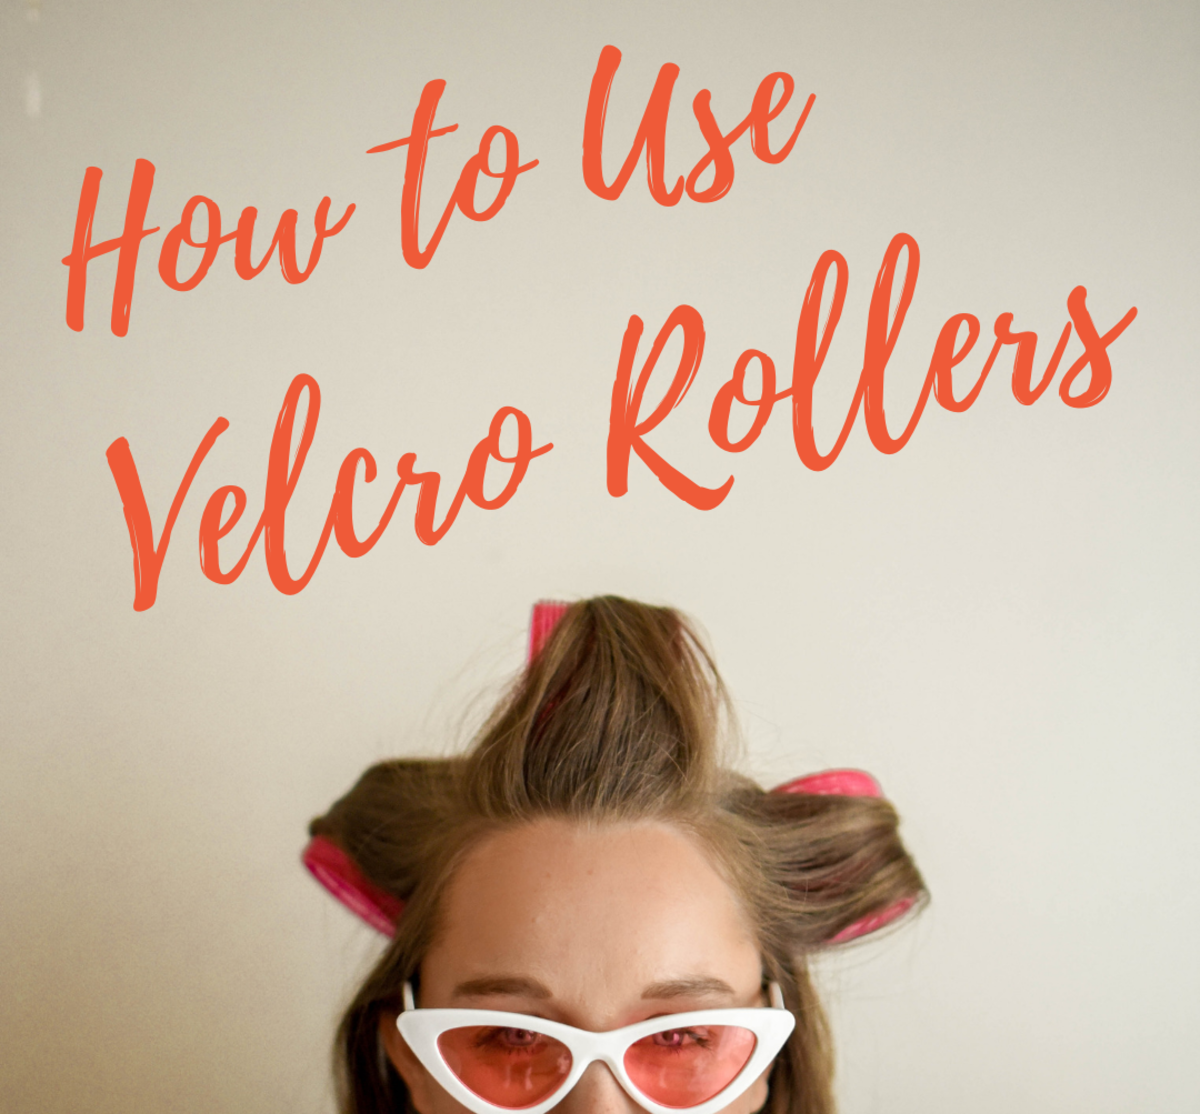 How To Use Velcro Rollers Bellatory Fashion And Beauty